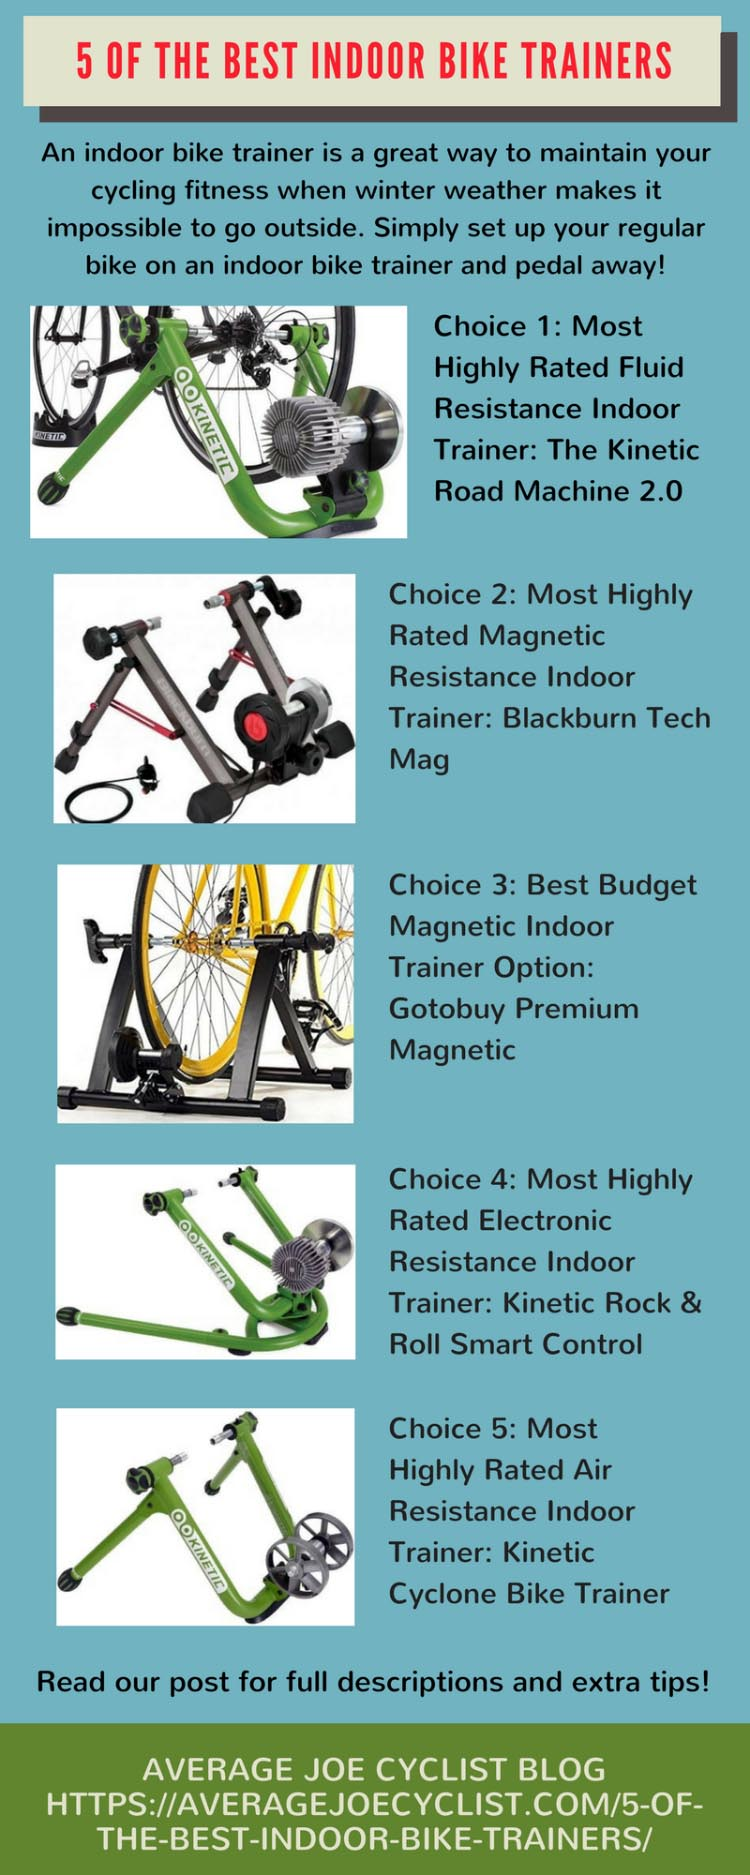 5 of the best indoor bike trainers